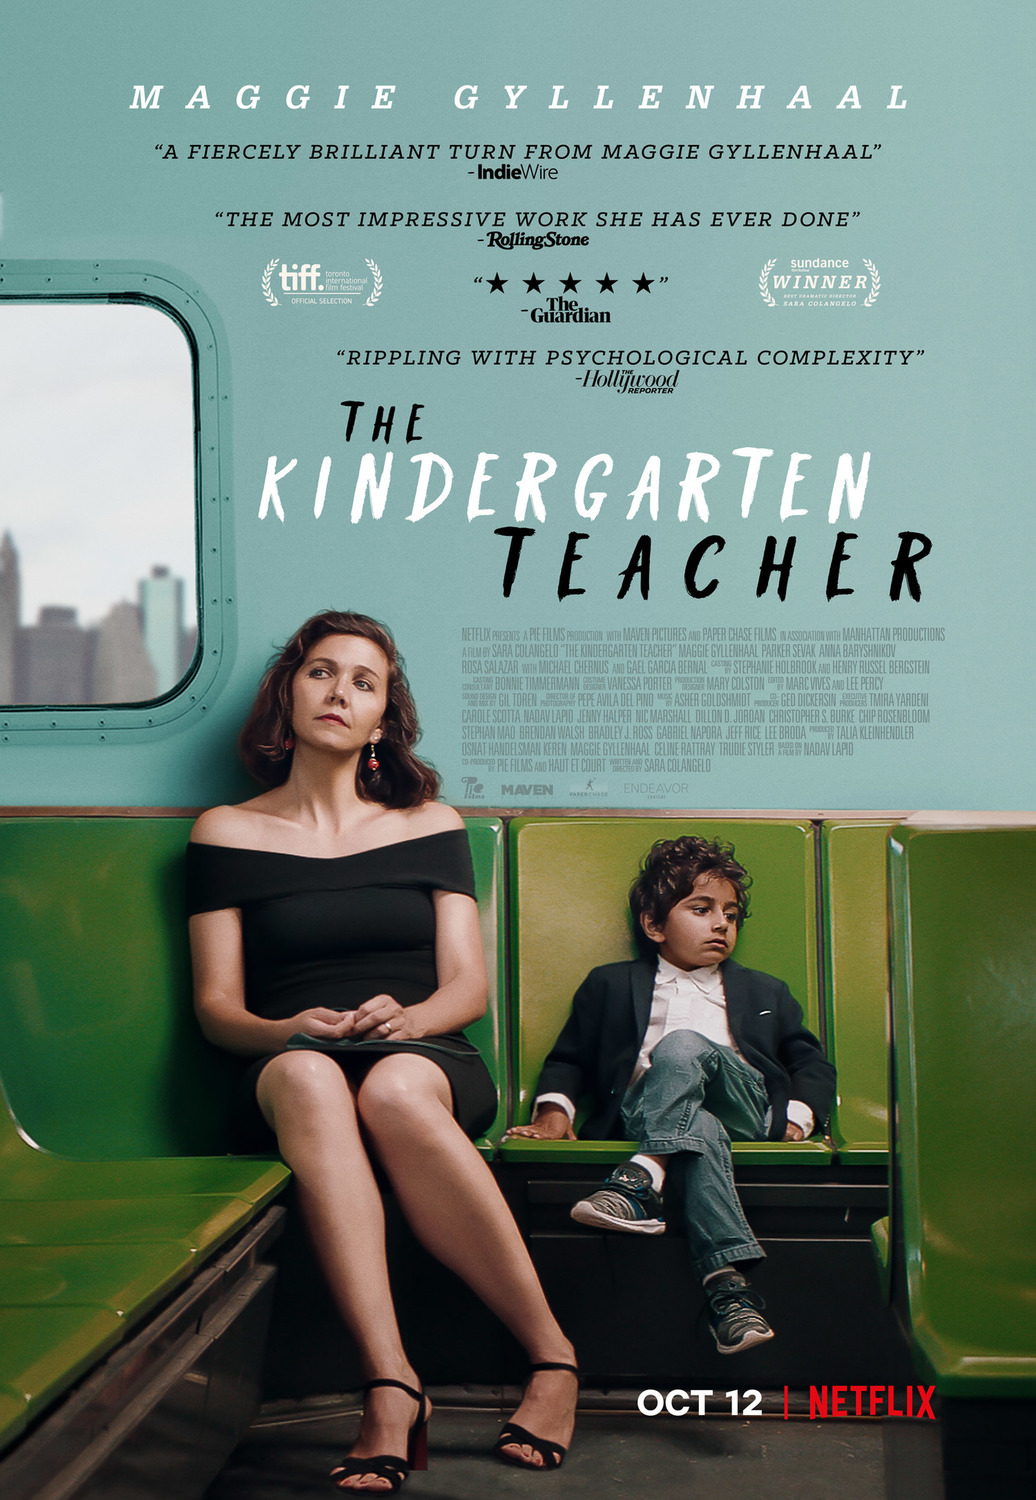 The Kindergarten Teacher movie poster, featuring Maggie Gyllenhaal and Parker Sevak.